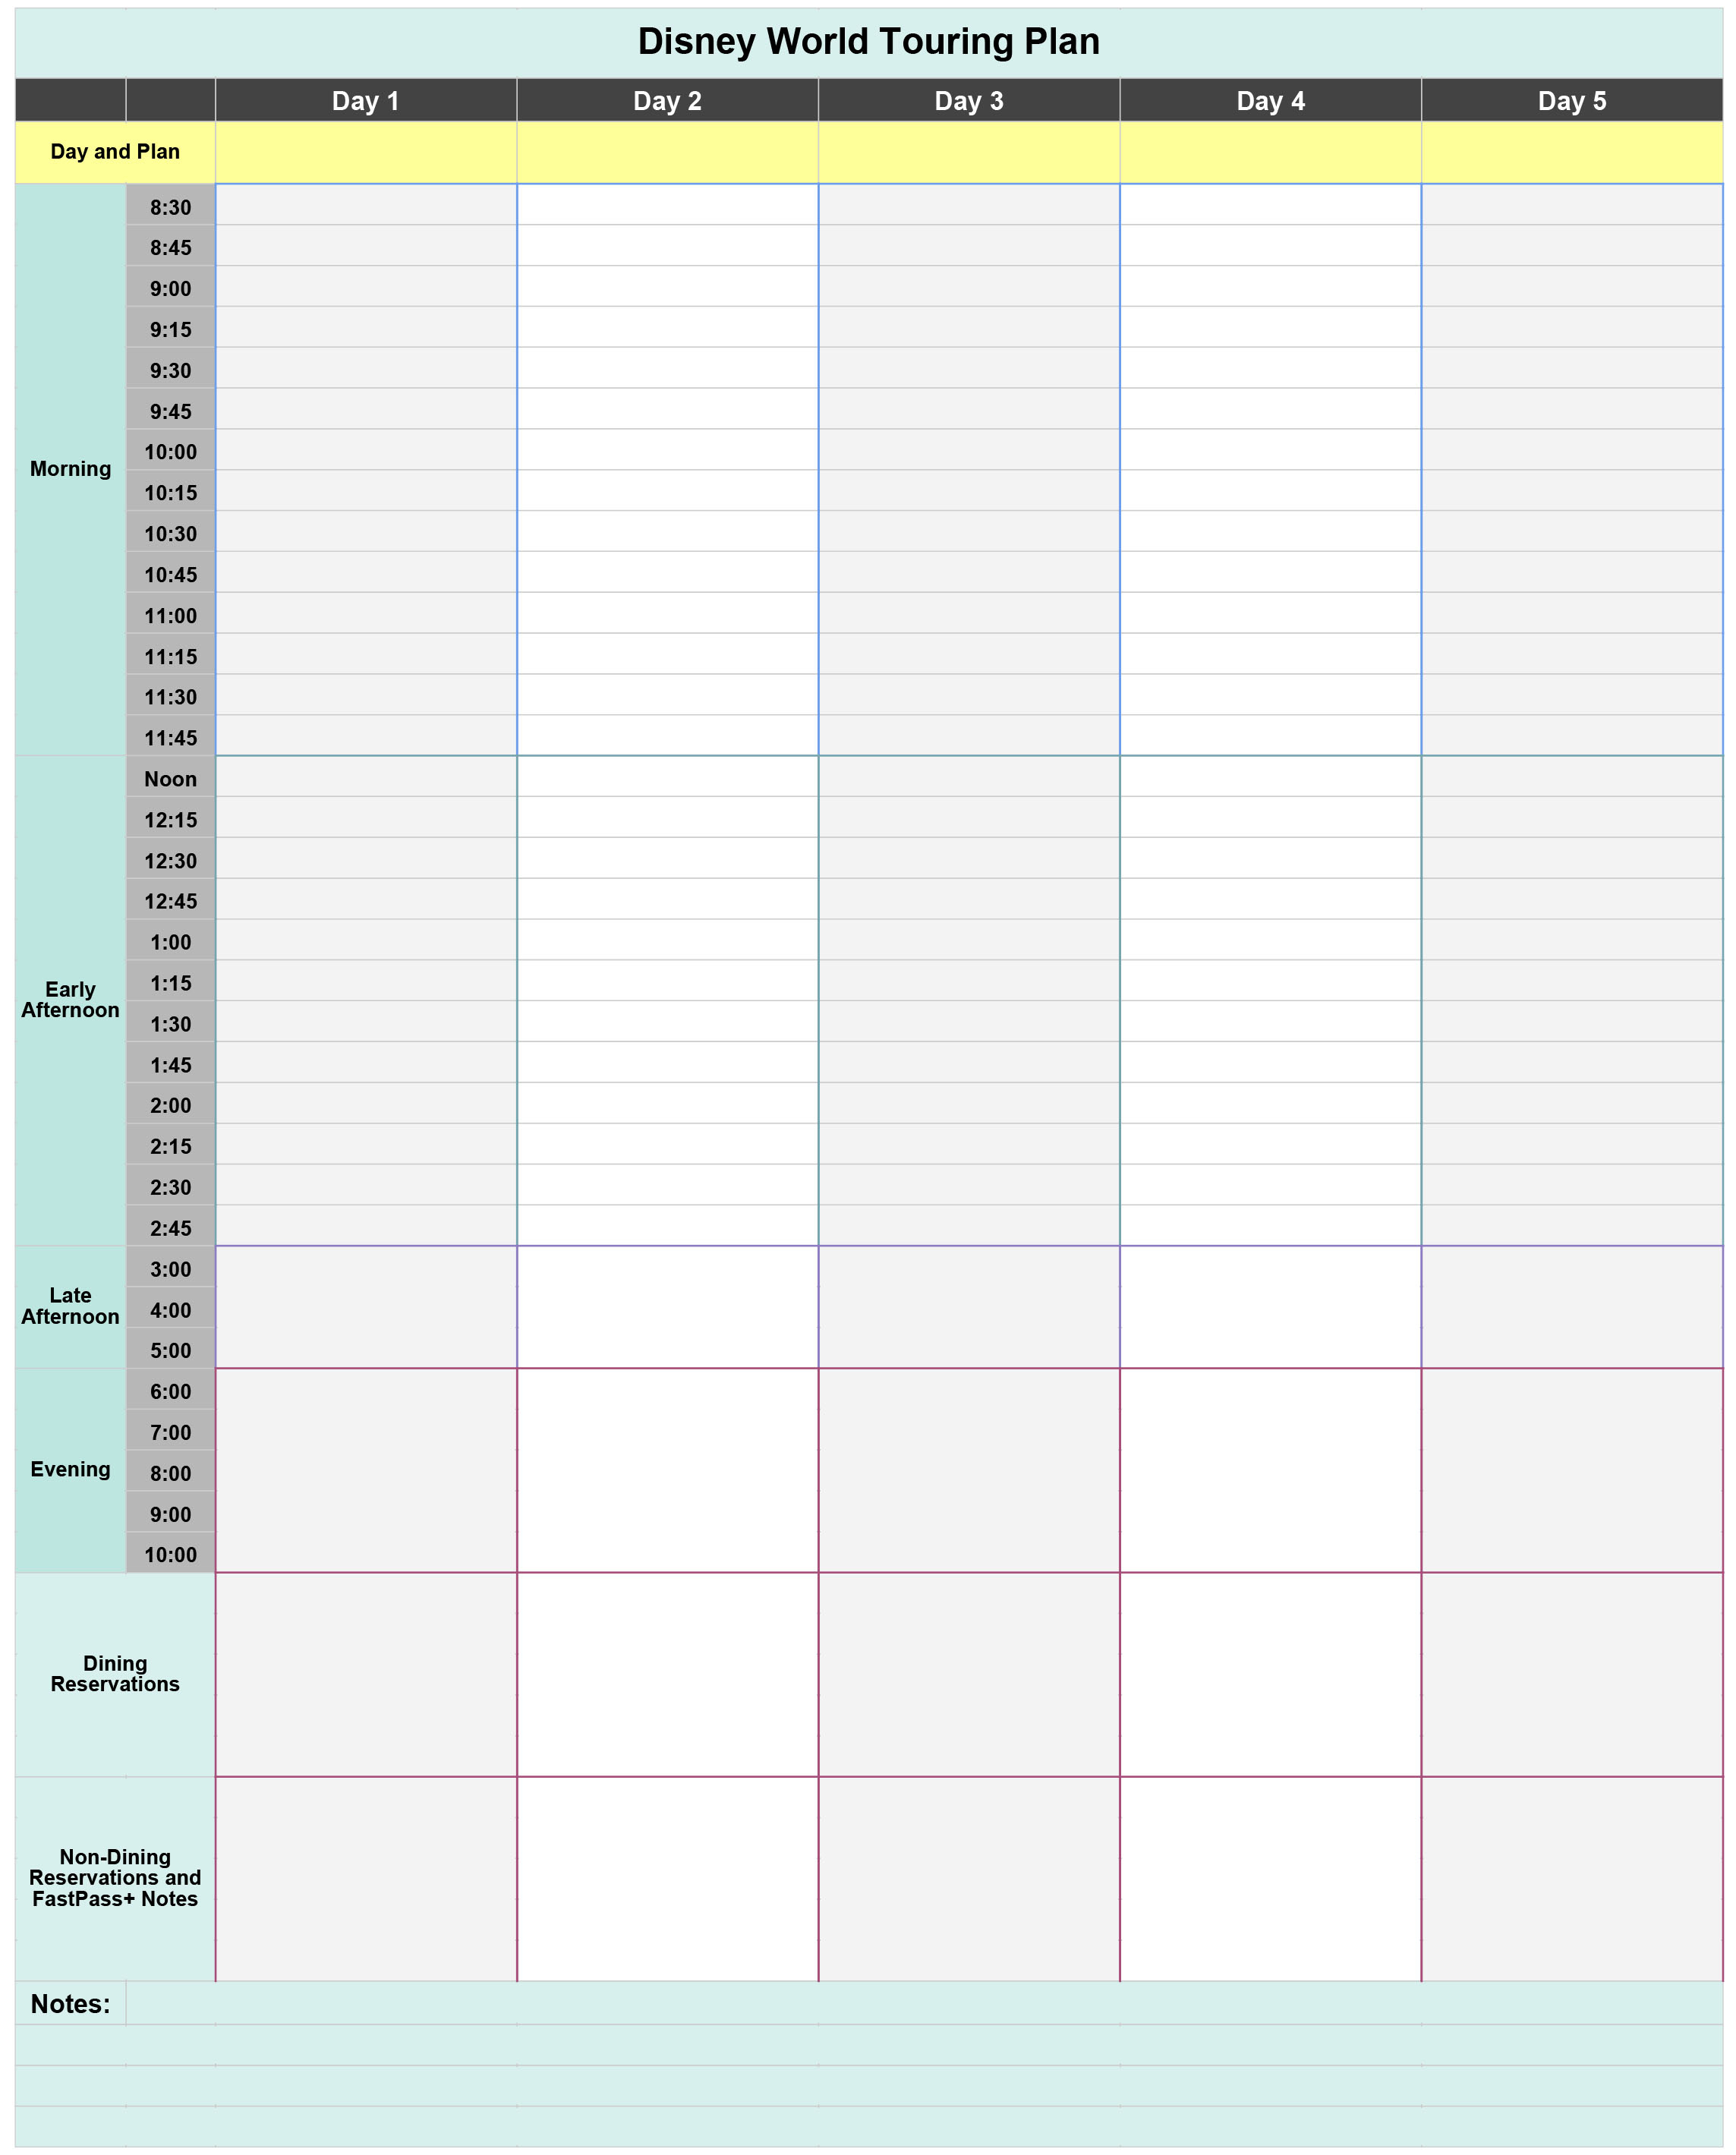 Walt Disney World Touring Plan Spreadsheet - Dream Plan Fly with regard to Disney World Itinerary Template Blank